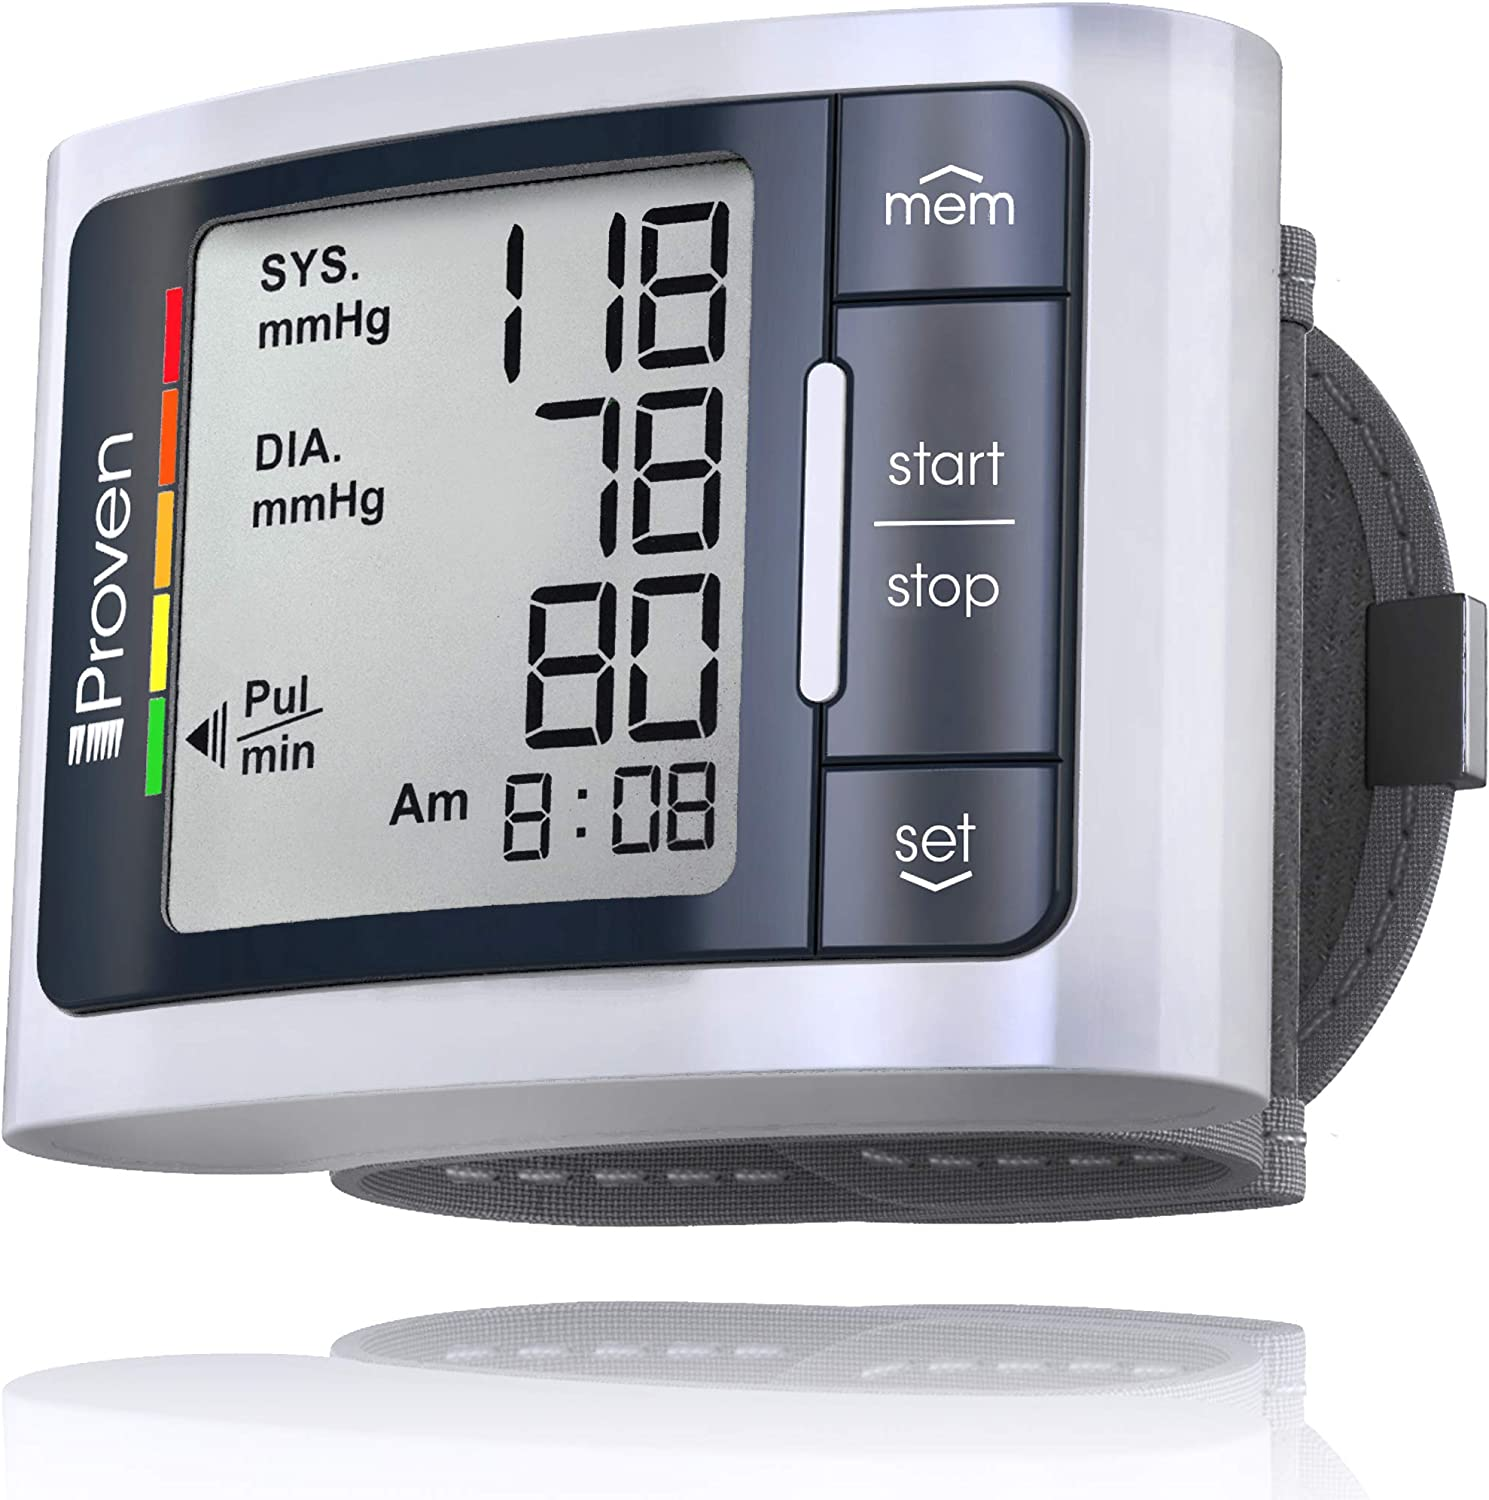 iProven Blood Pressure Monitor Wrist Cuff, Automatic bp Cuff with Irregular Heartbeat Detection, 1 Size bp Cuff fits All, Compact and Easy to Carry Digital Home Blood Pressure Monitor, BPM-337